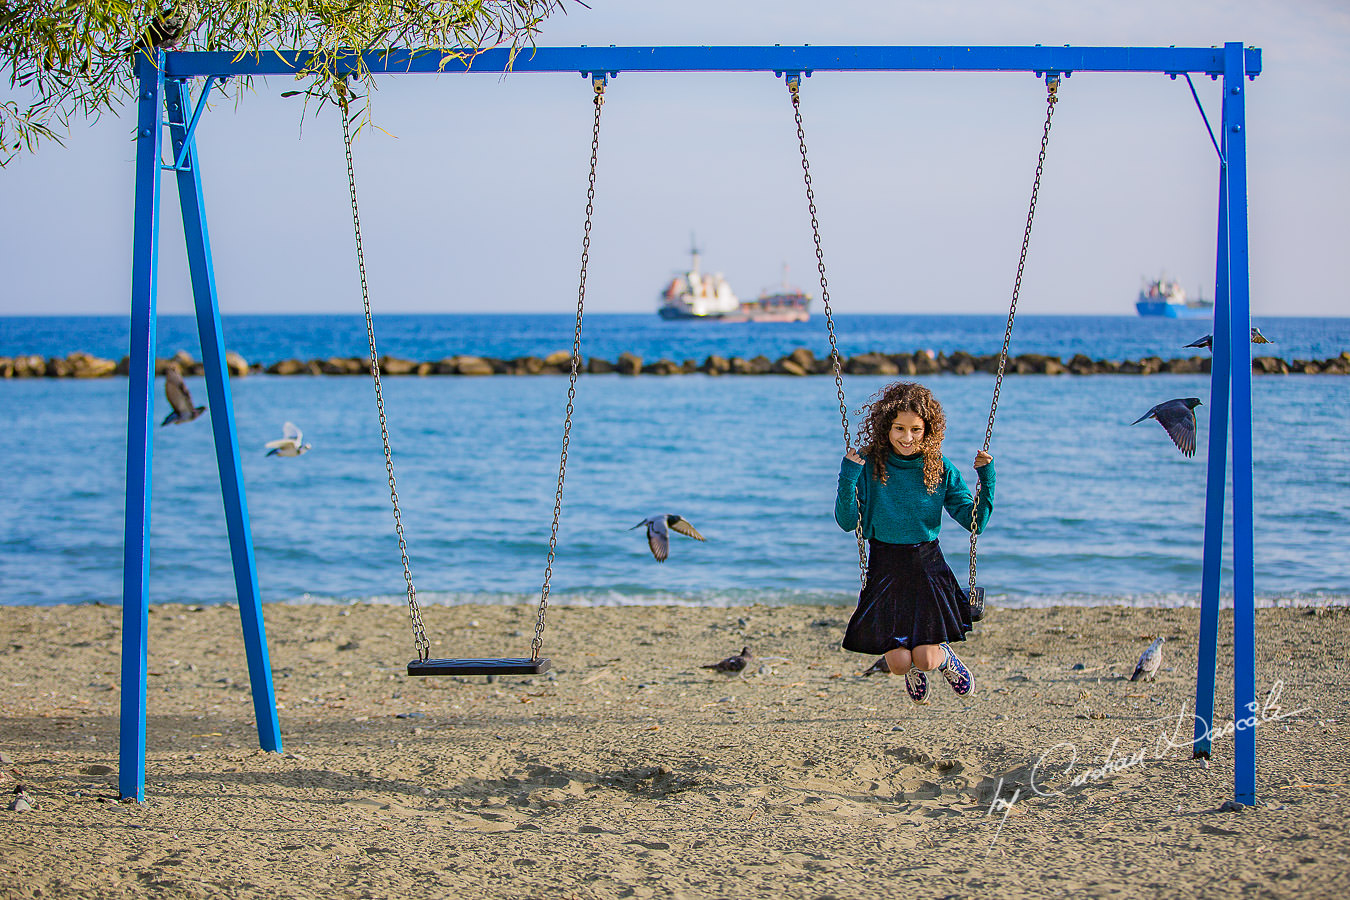 Young lady in the swing on a beach, moments captured by Cristian Dascalu during a beautiful Limassol family photography photo session.